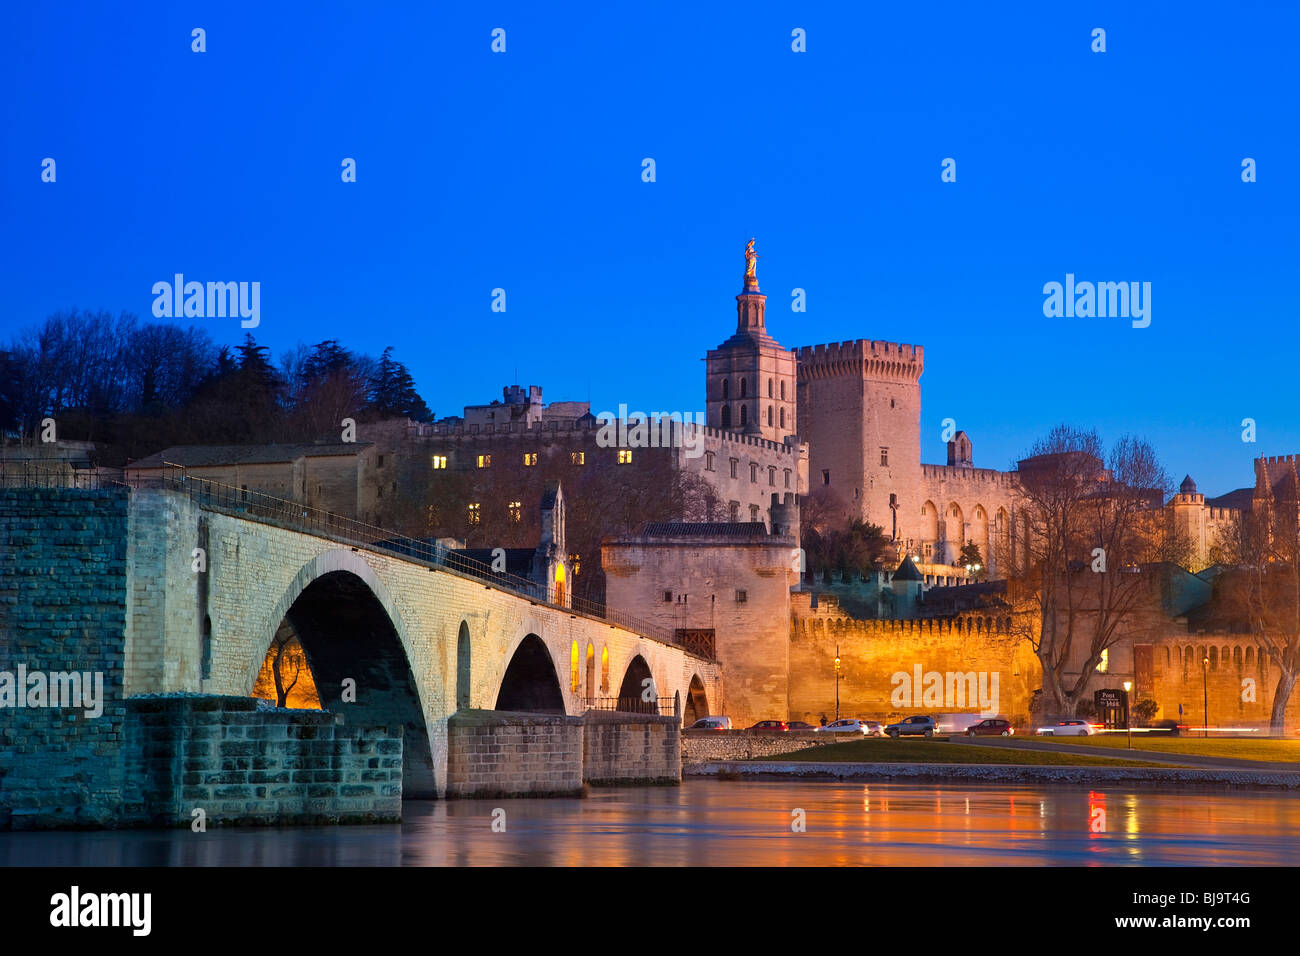 PALAIS DES PAPES AND BENEZET BRIDGE, AVIGNON, FRANCE - Stock Image